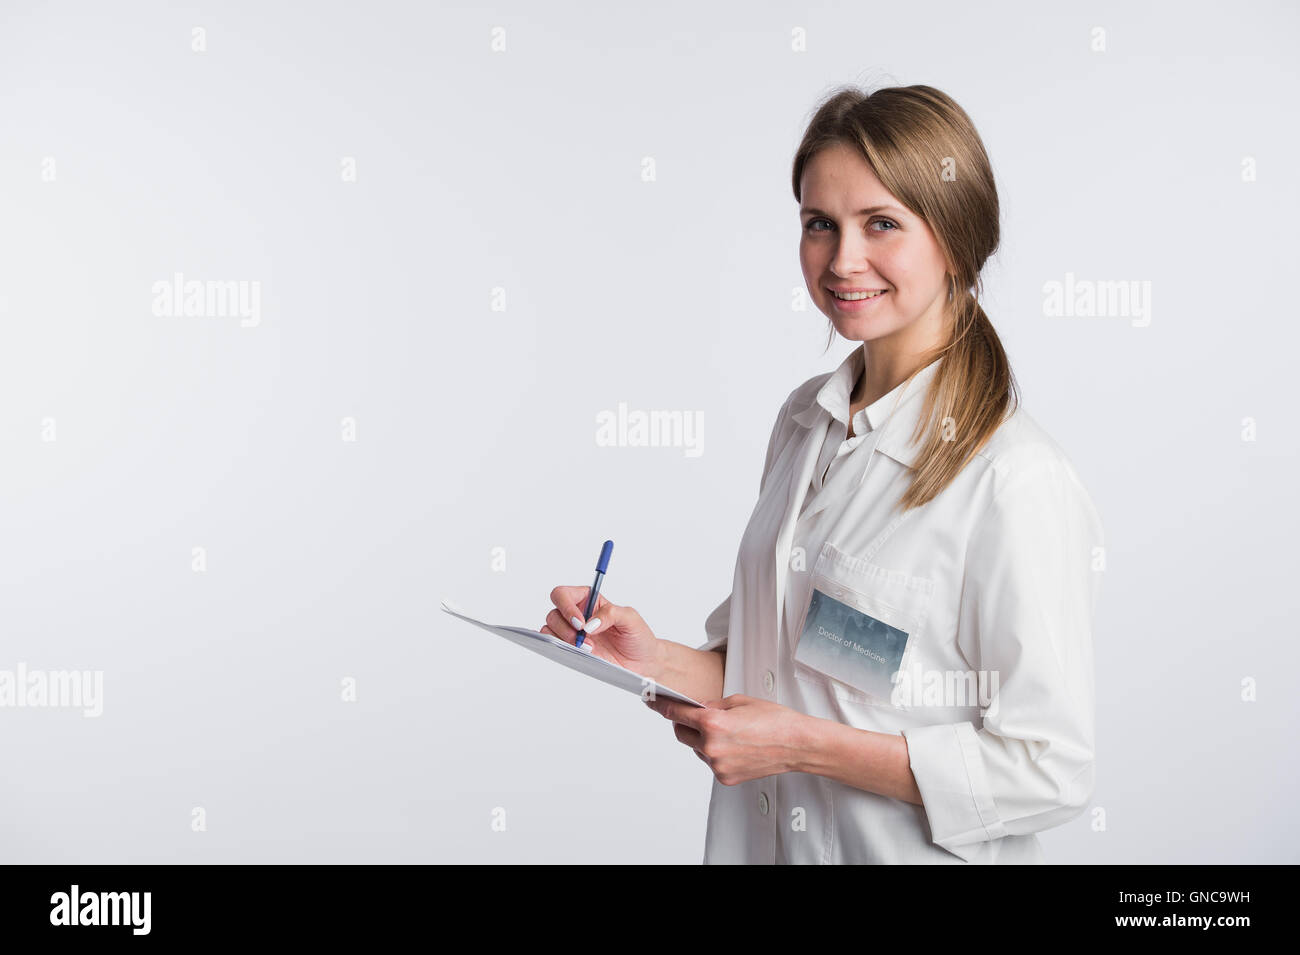 Cheerful medical doctor woman taking notes. Isolated on white - Stock Image